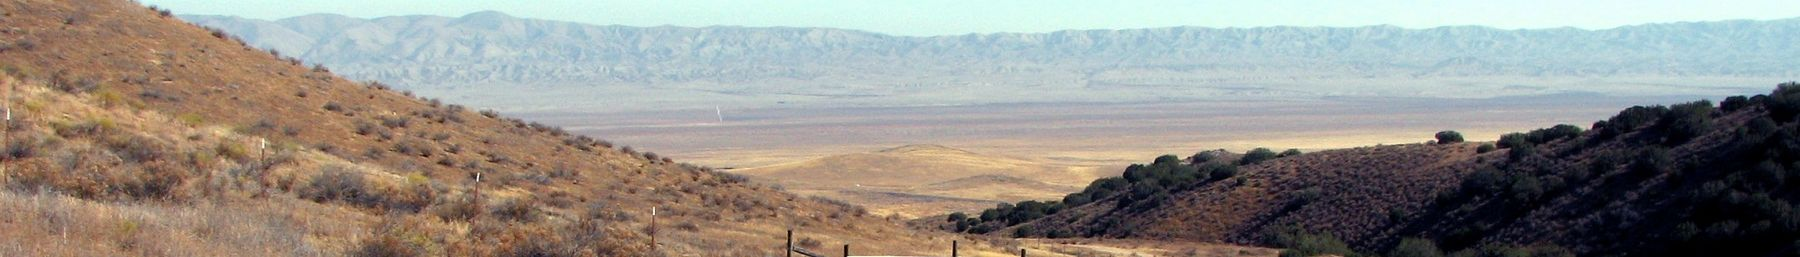 WV banner San Luis Obispo County Carrizo Plain National Monument.jpg